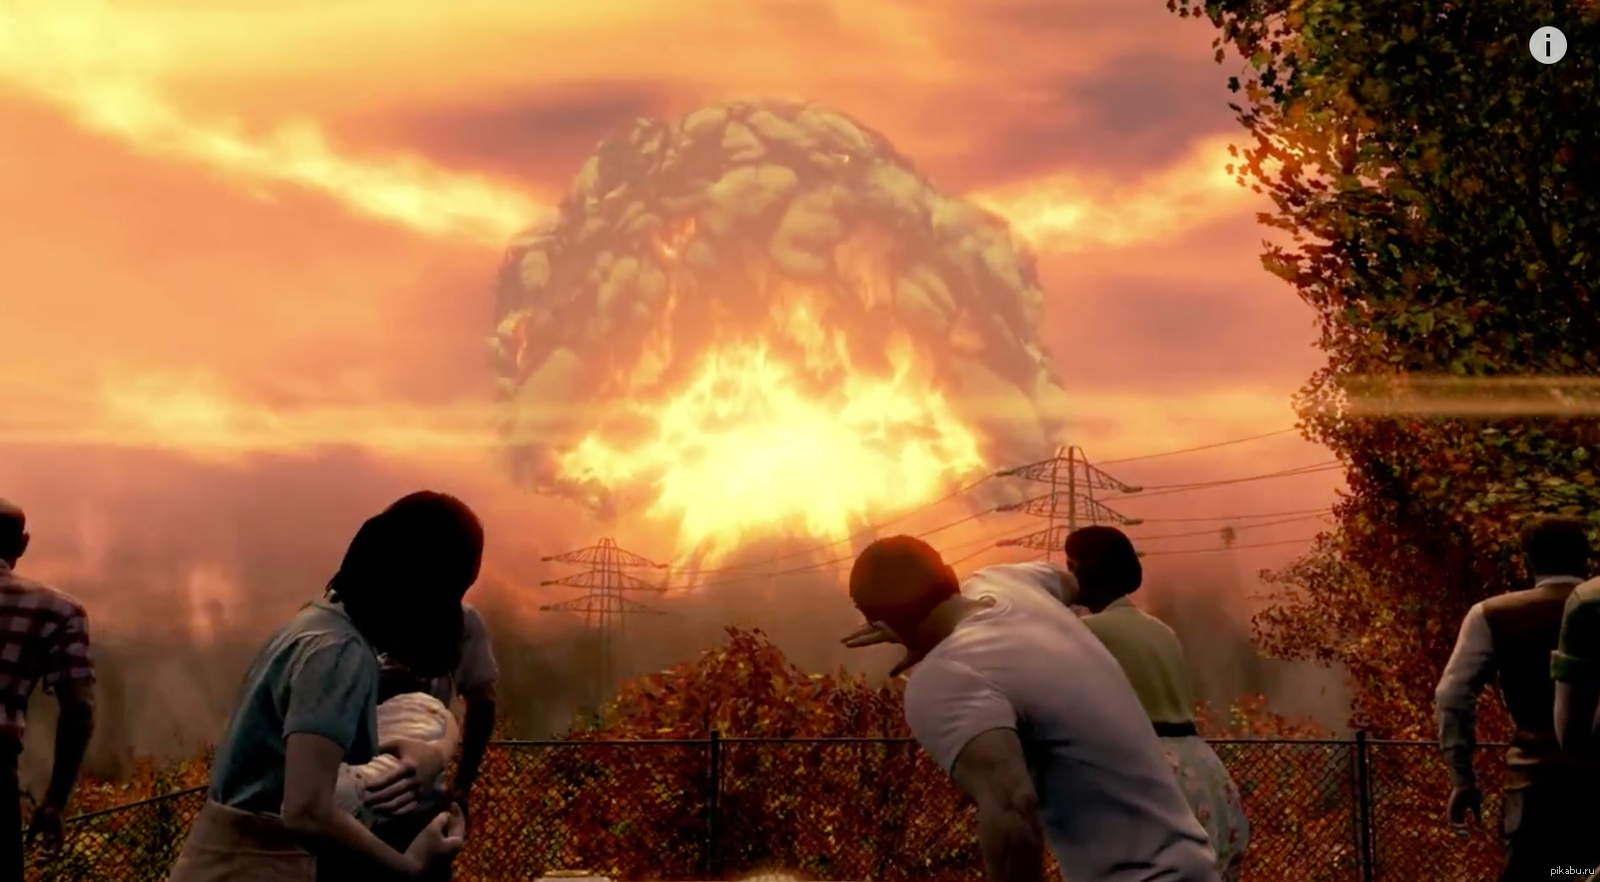 10 more films featuring nuclear attacks listverse - 1200×700